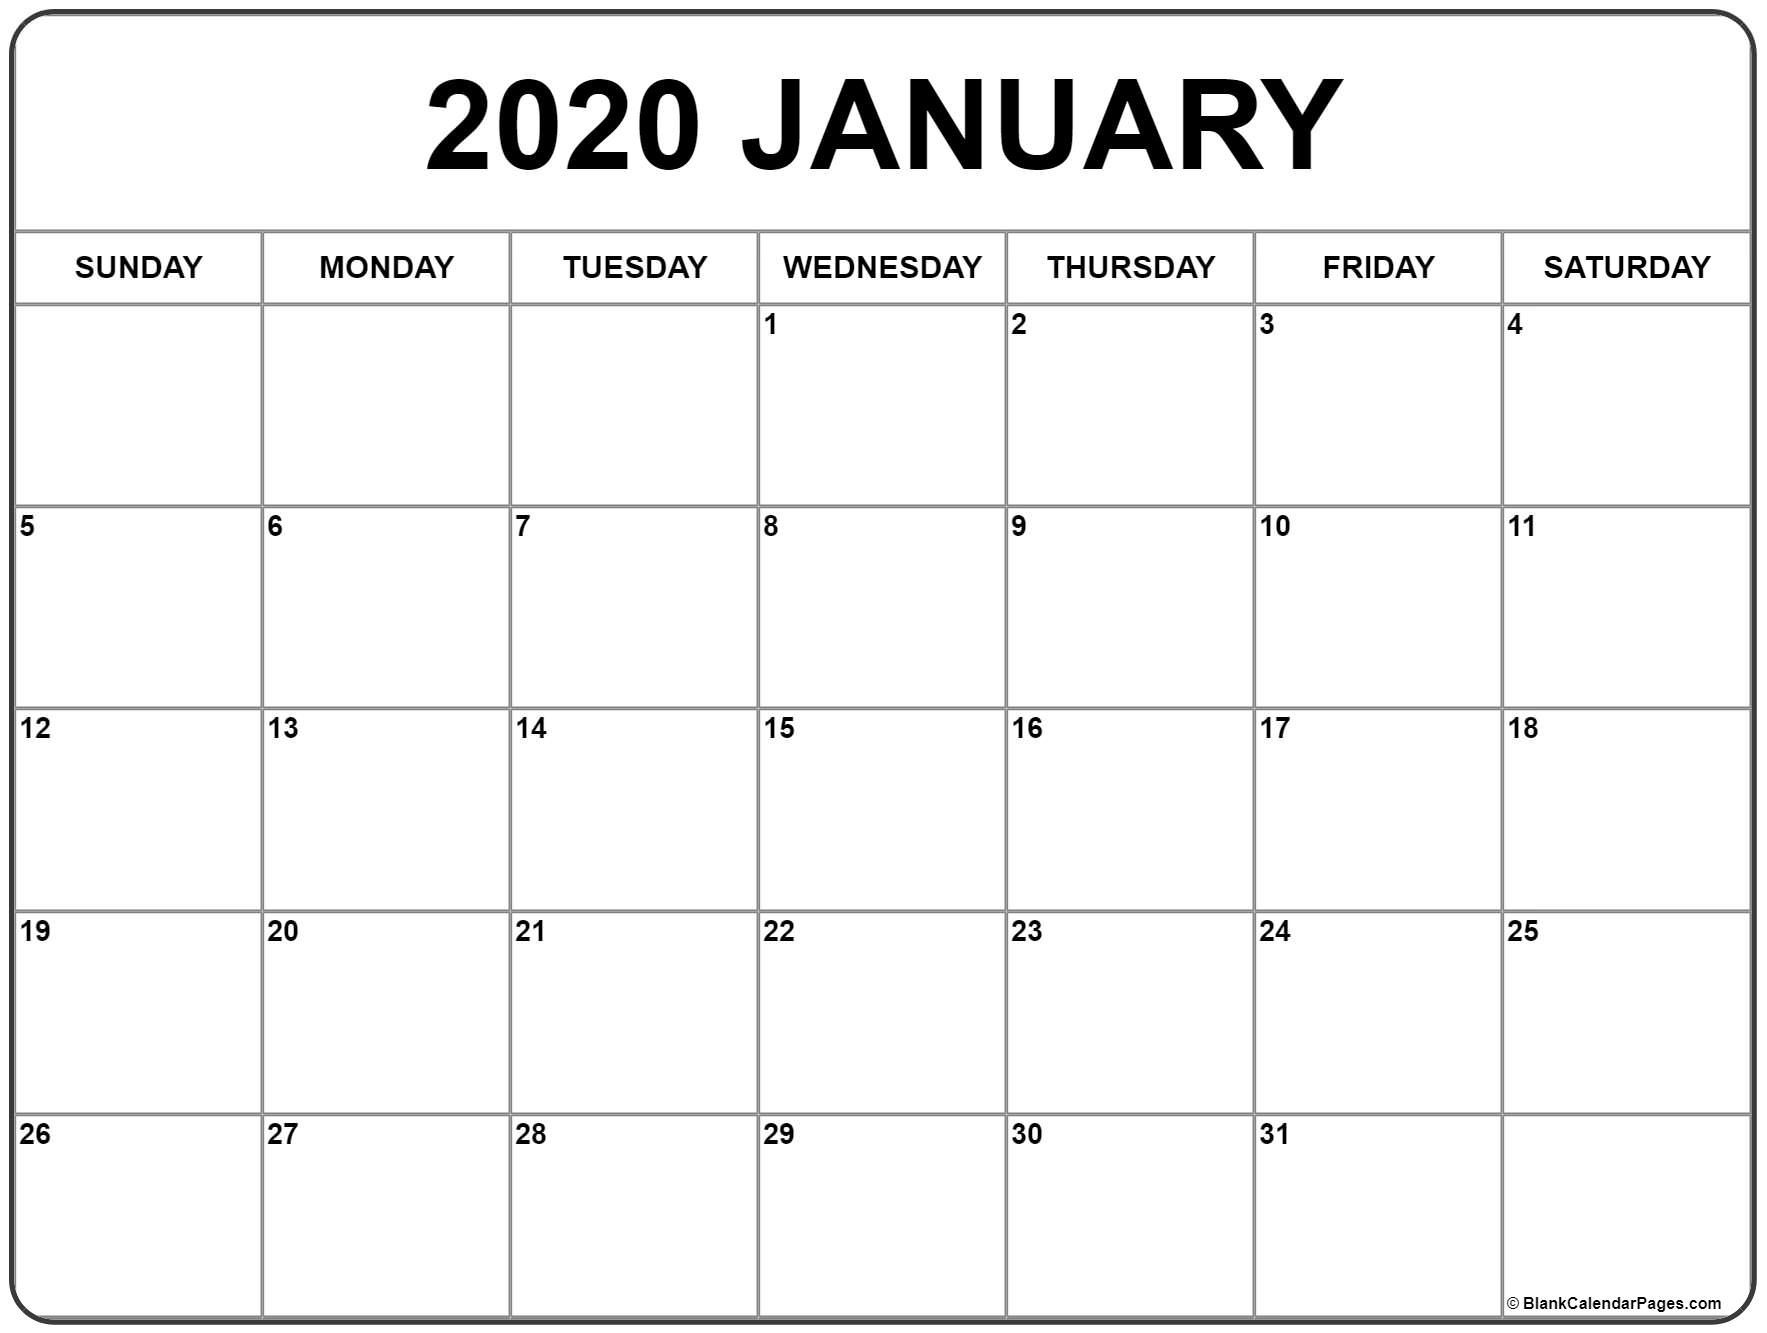 January 2020 Calendar | Free Printable Monthly Calendars Remarkable Free Printable Calendar Templates 2020